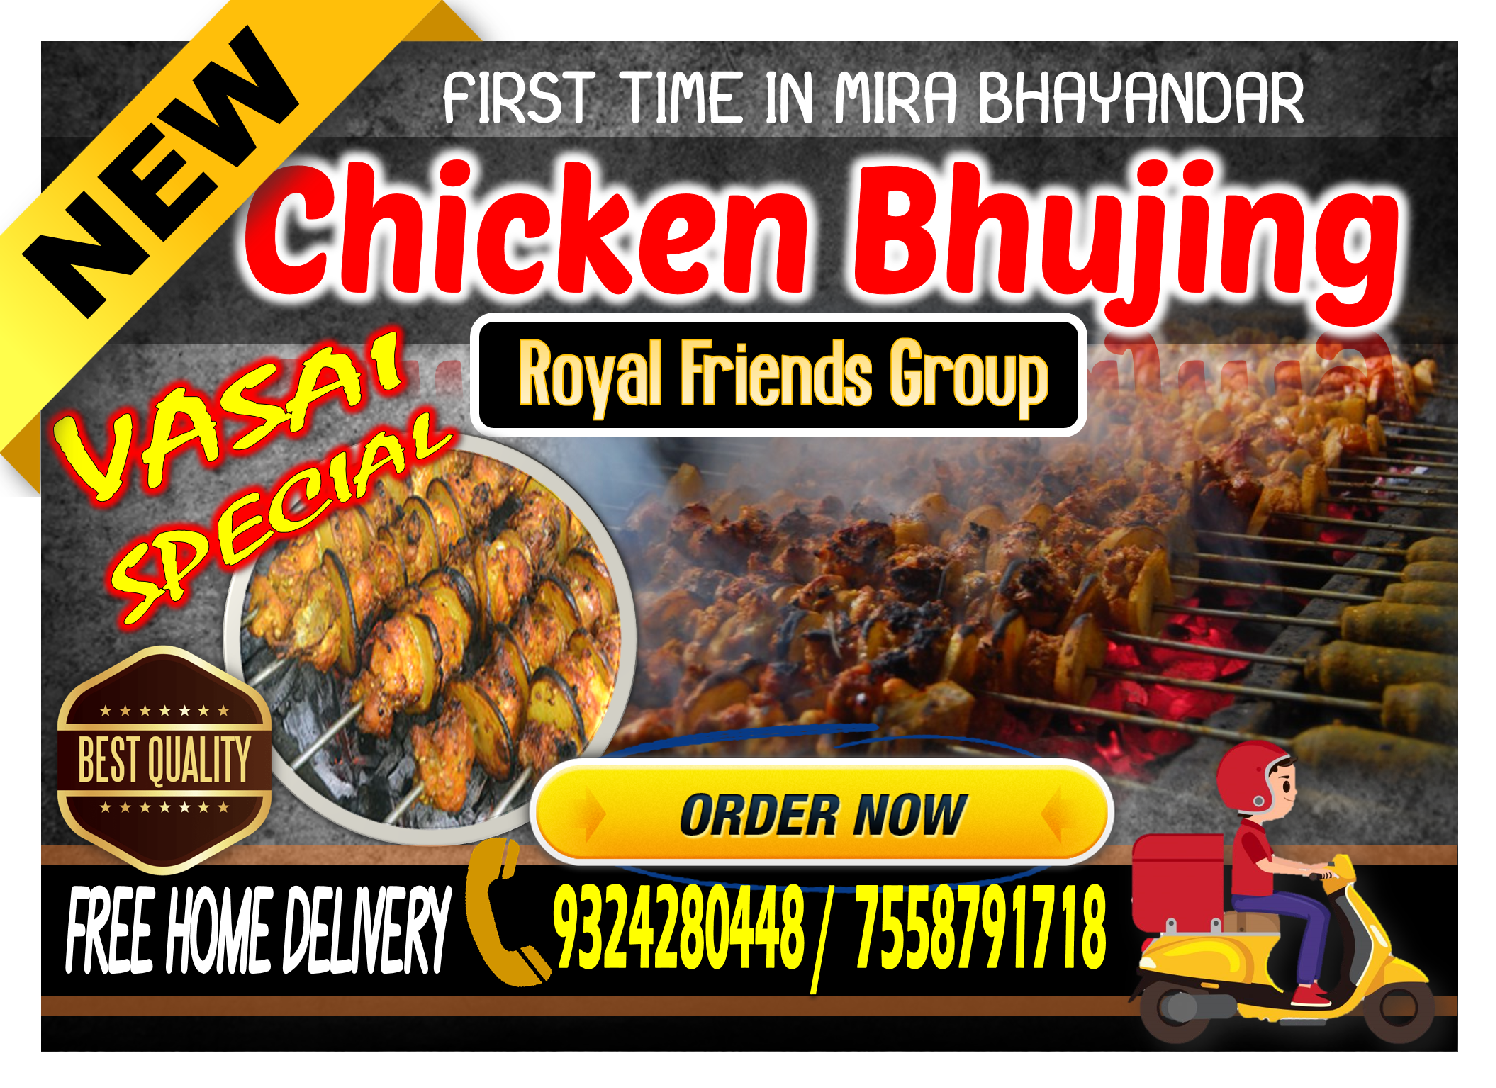 CHICKEN BHUJING – FREE HOME DELIVERY